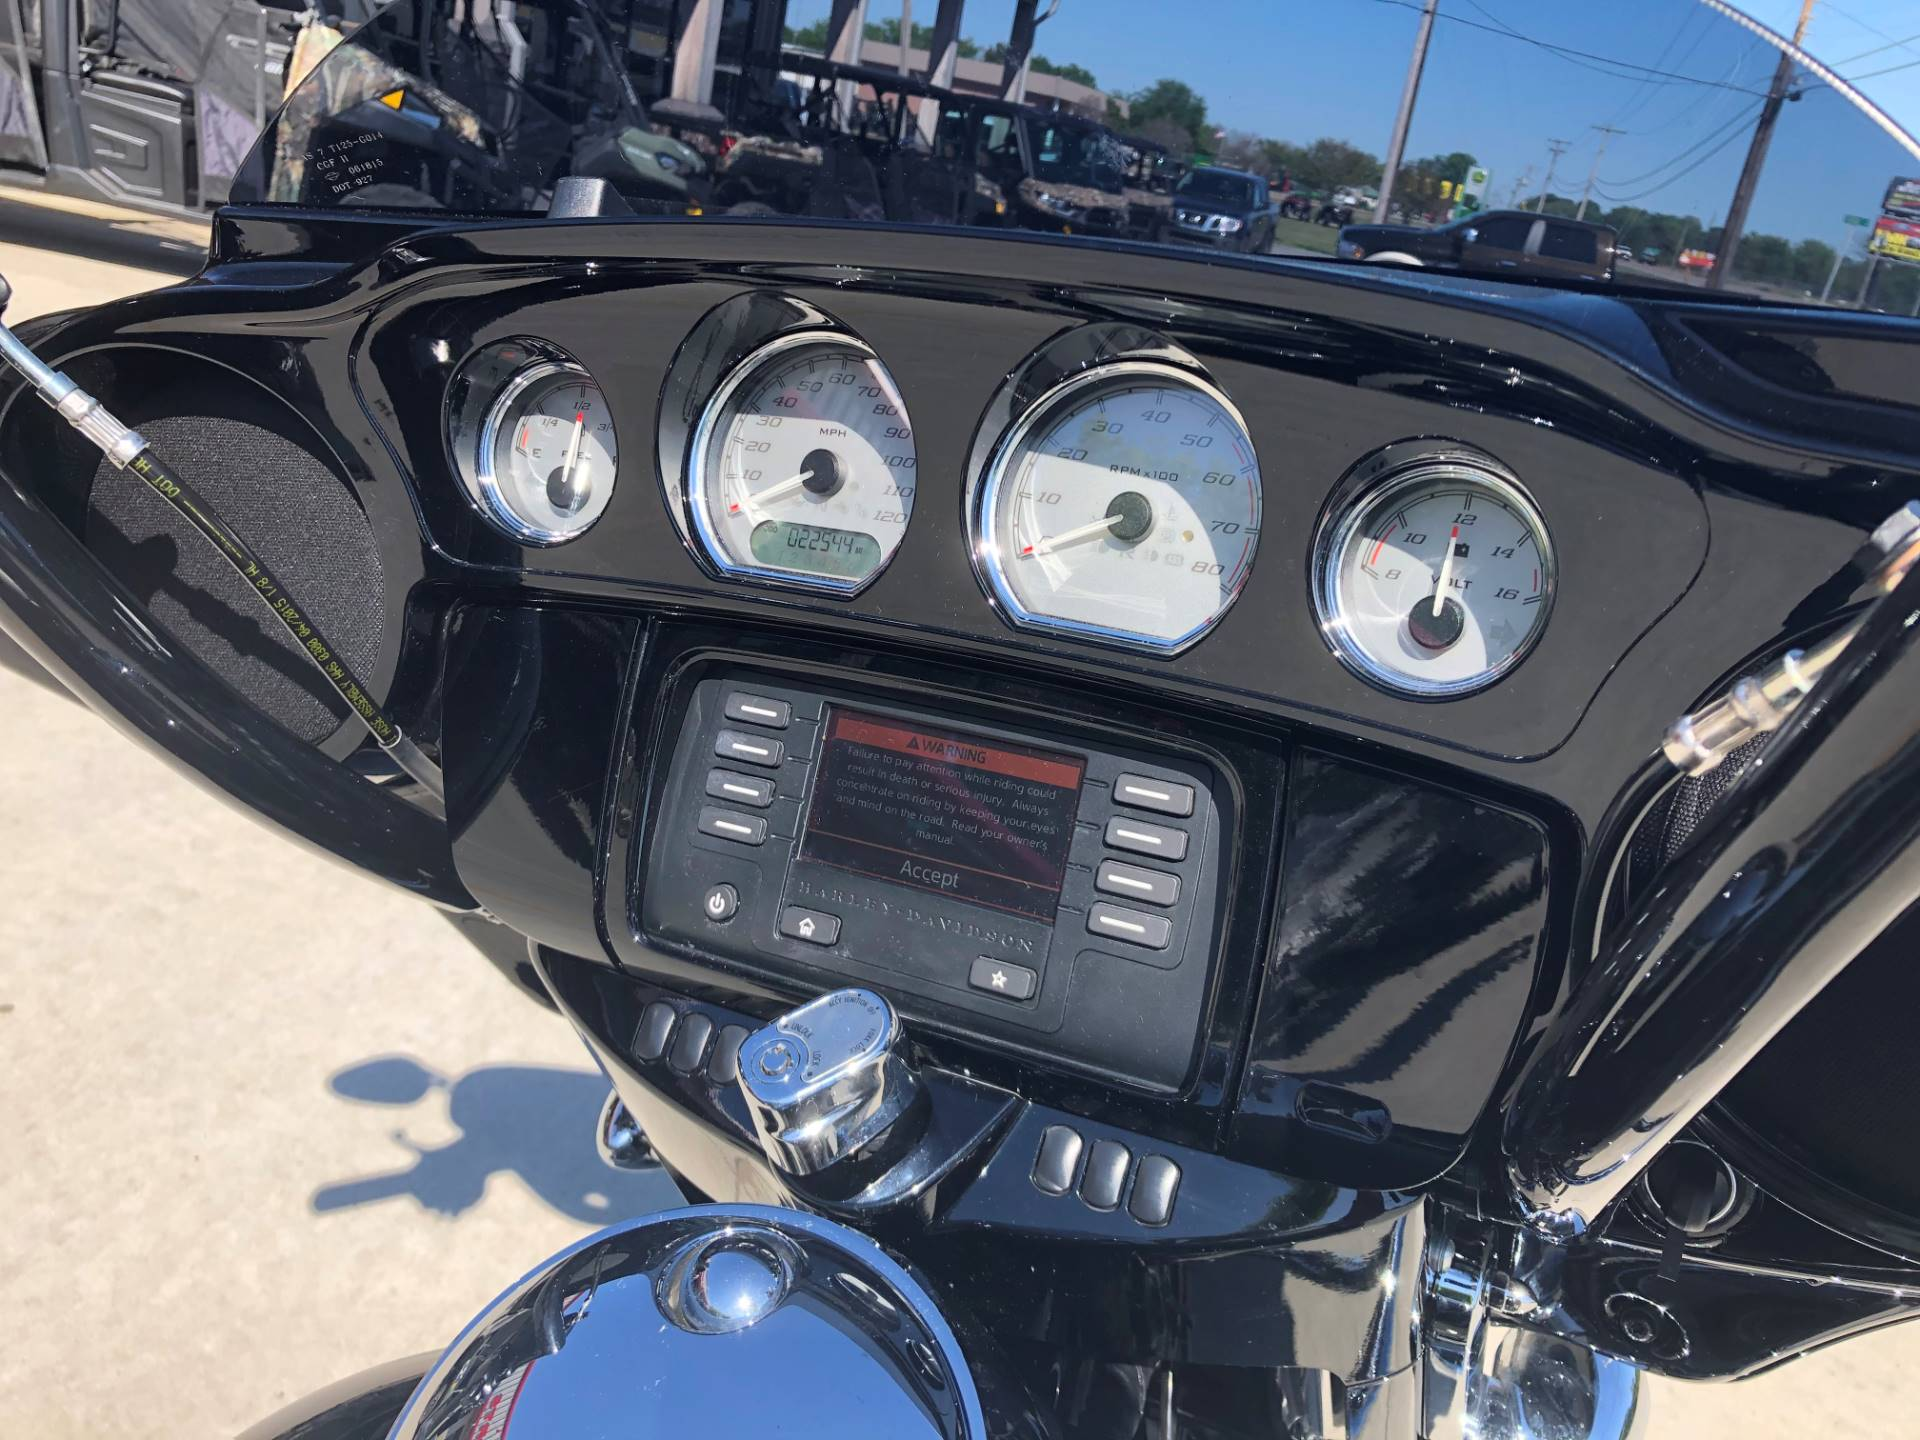 2015 Harley-Davidson Street Glide® in Leland, Mississippi - Photo 6